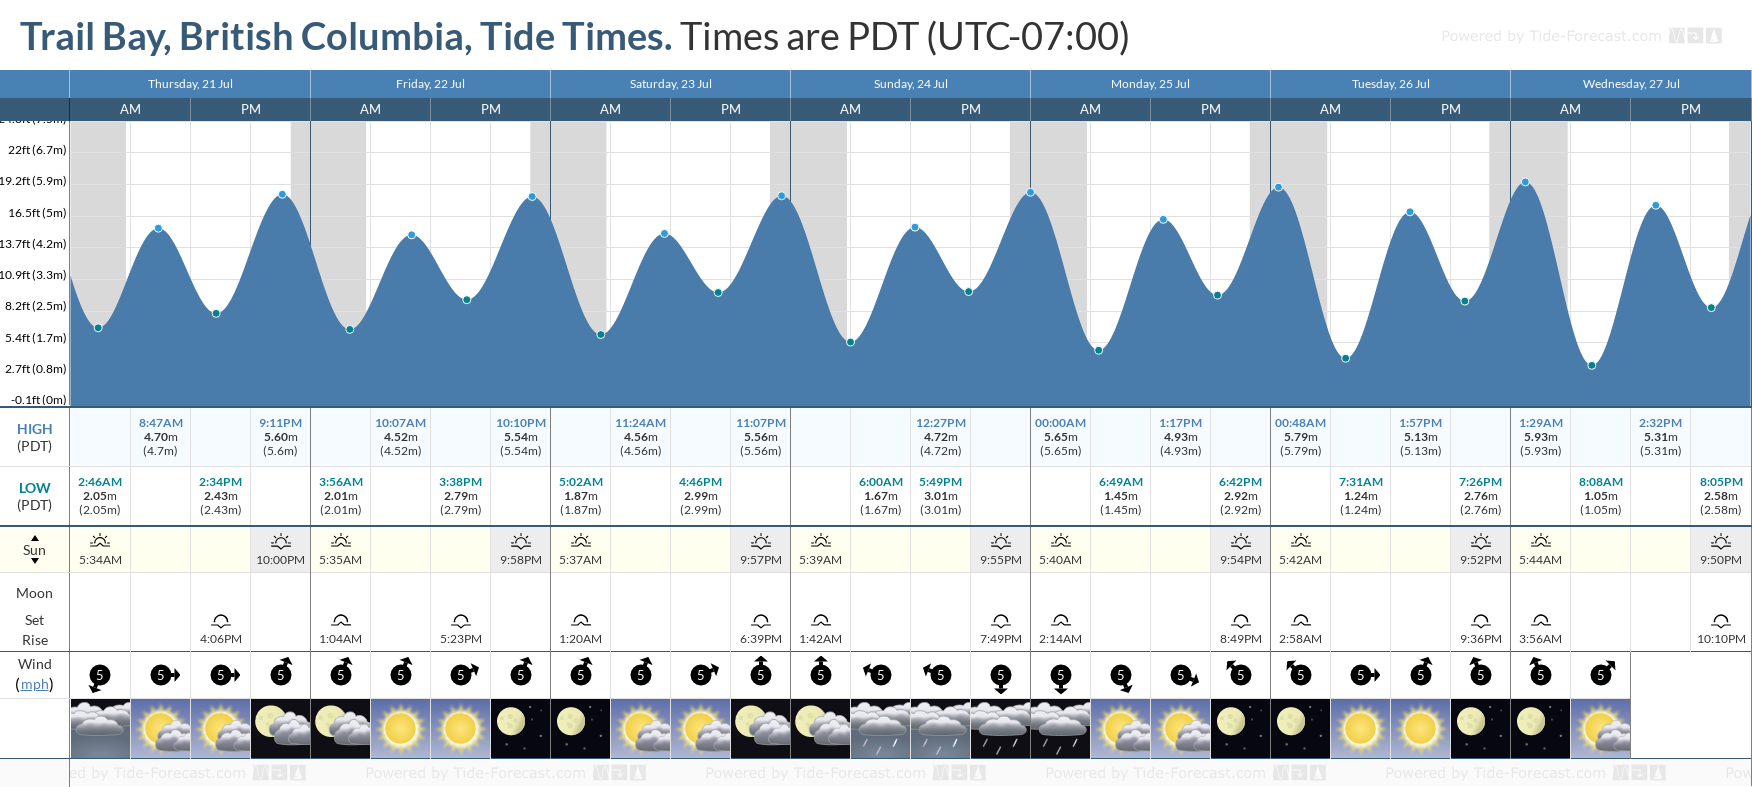 Trail Bay, British Columbia Tide Chart including high and low tide tide times for the next 7 days